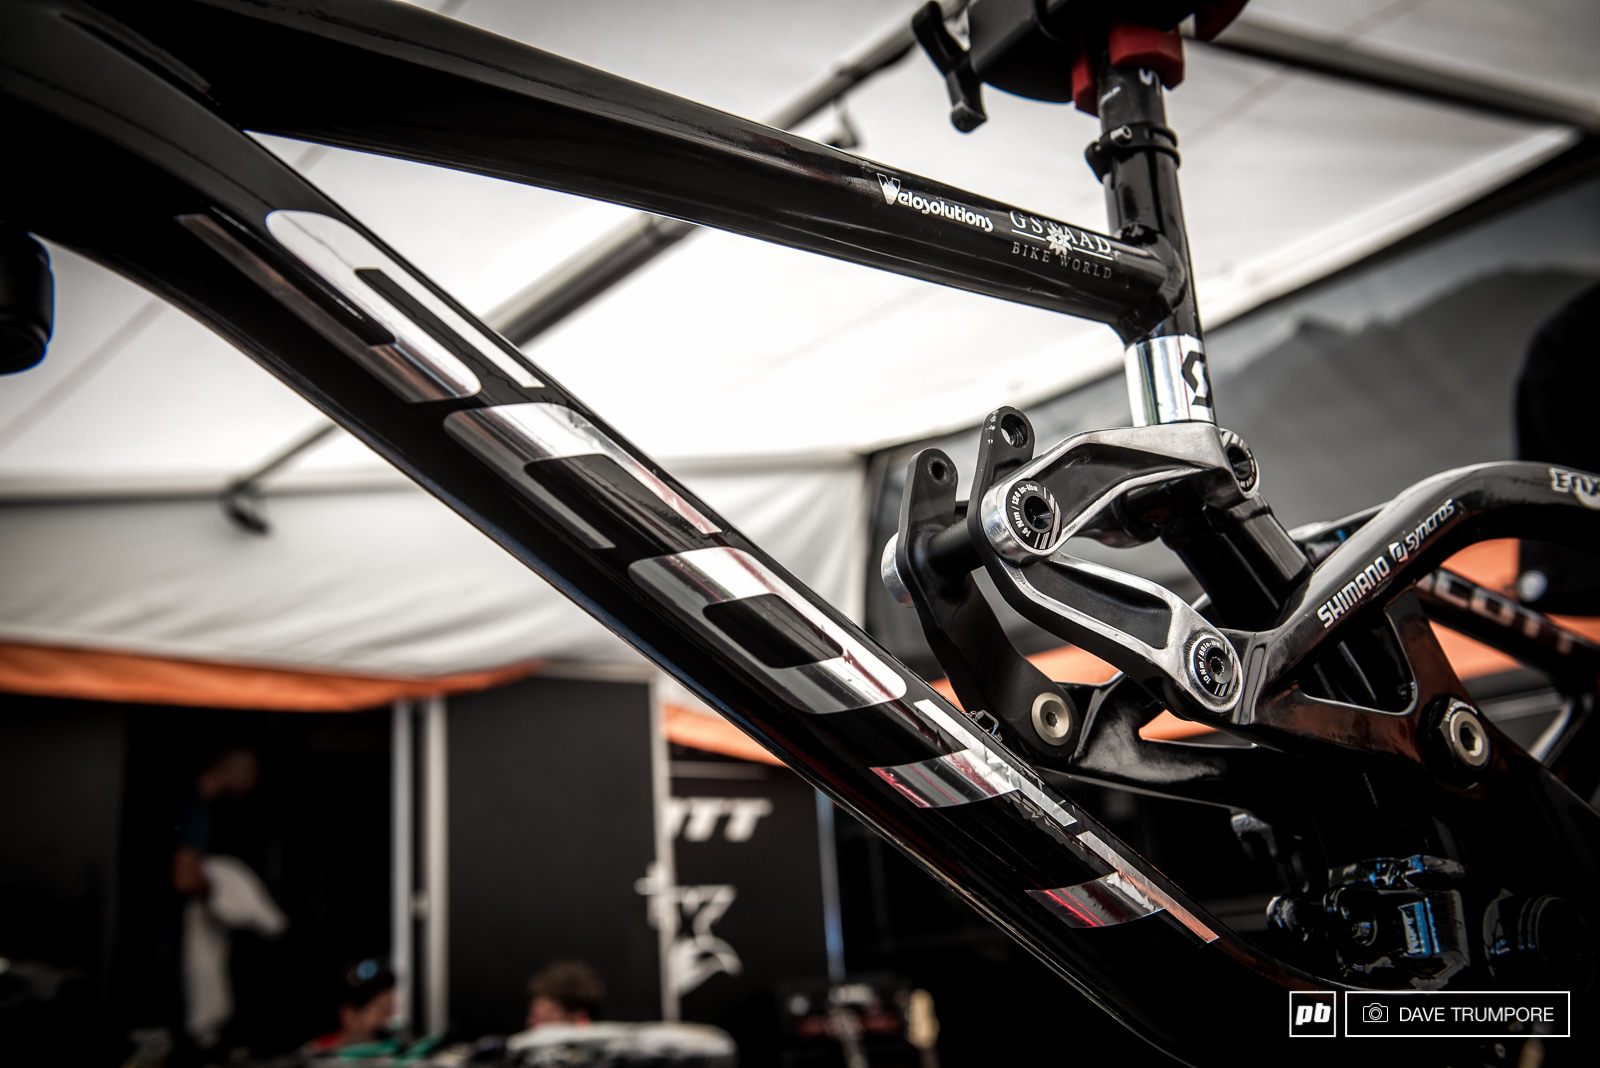 Neko Mullally s Scott Gambler sporting matte black finish a chrome decals. His Mechanic has polished the links by hand.